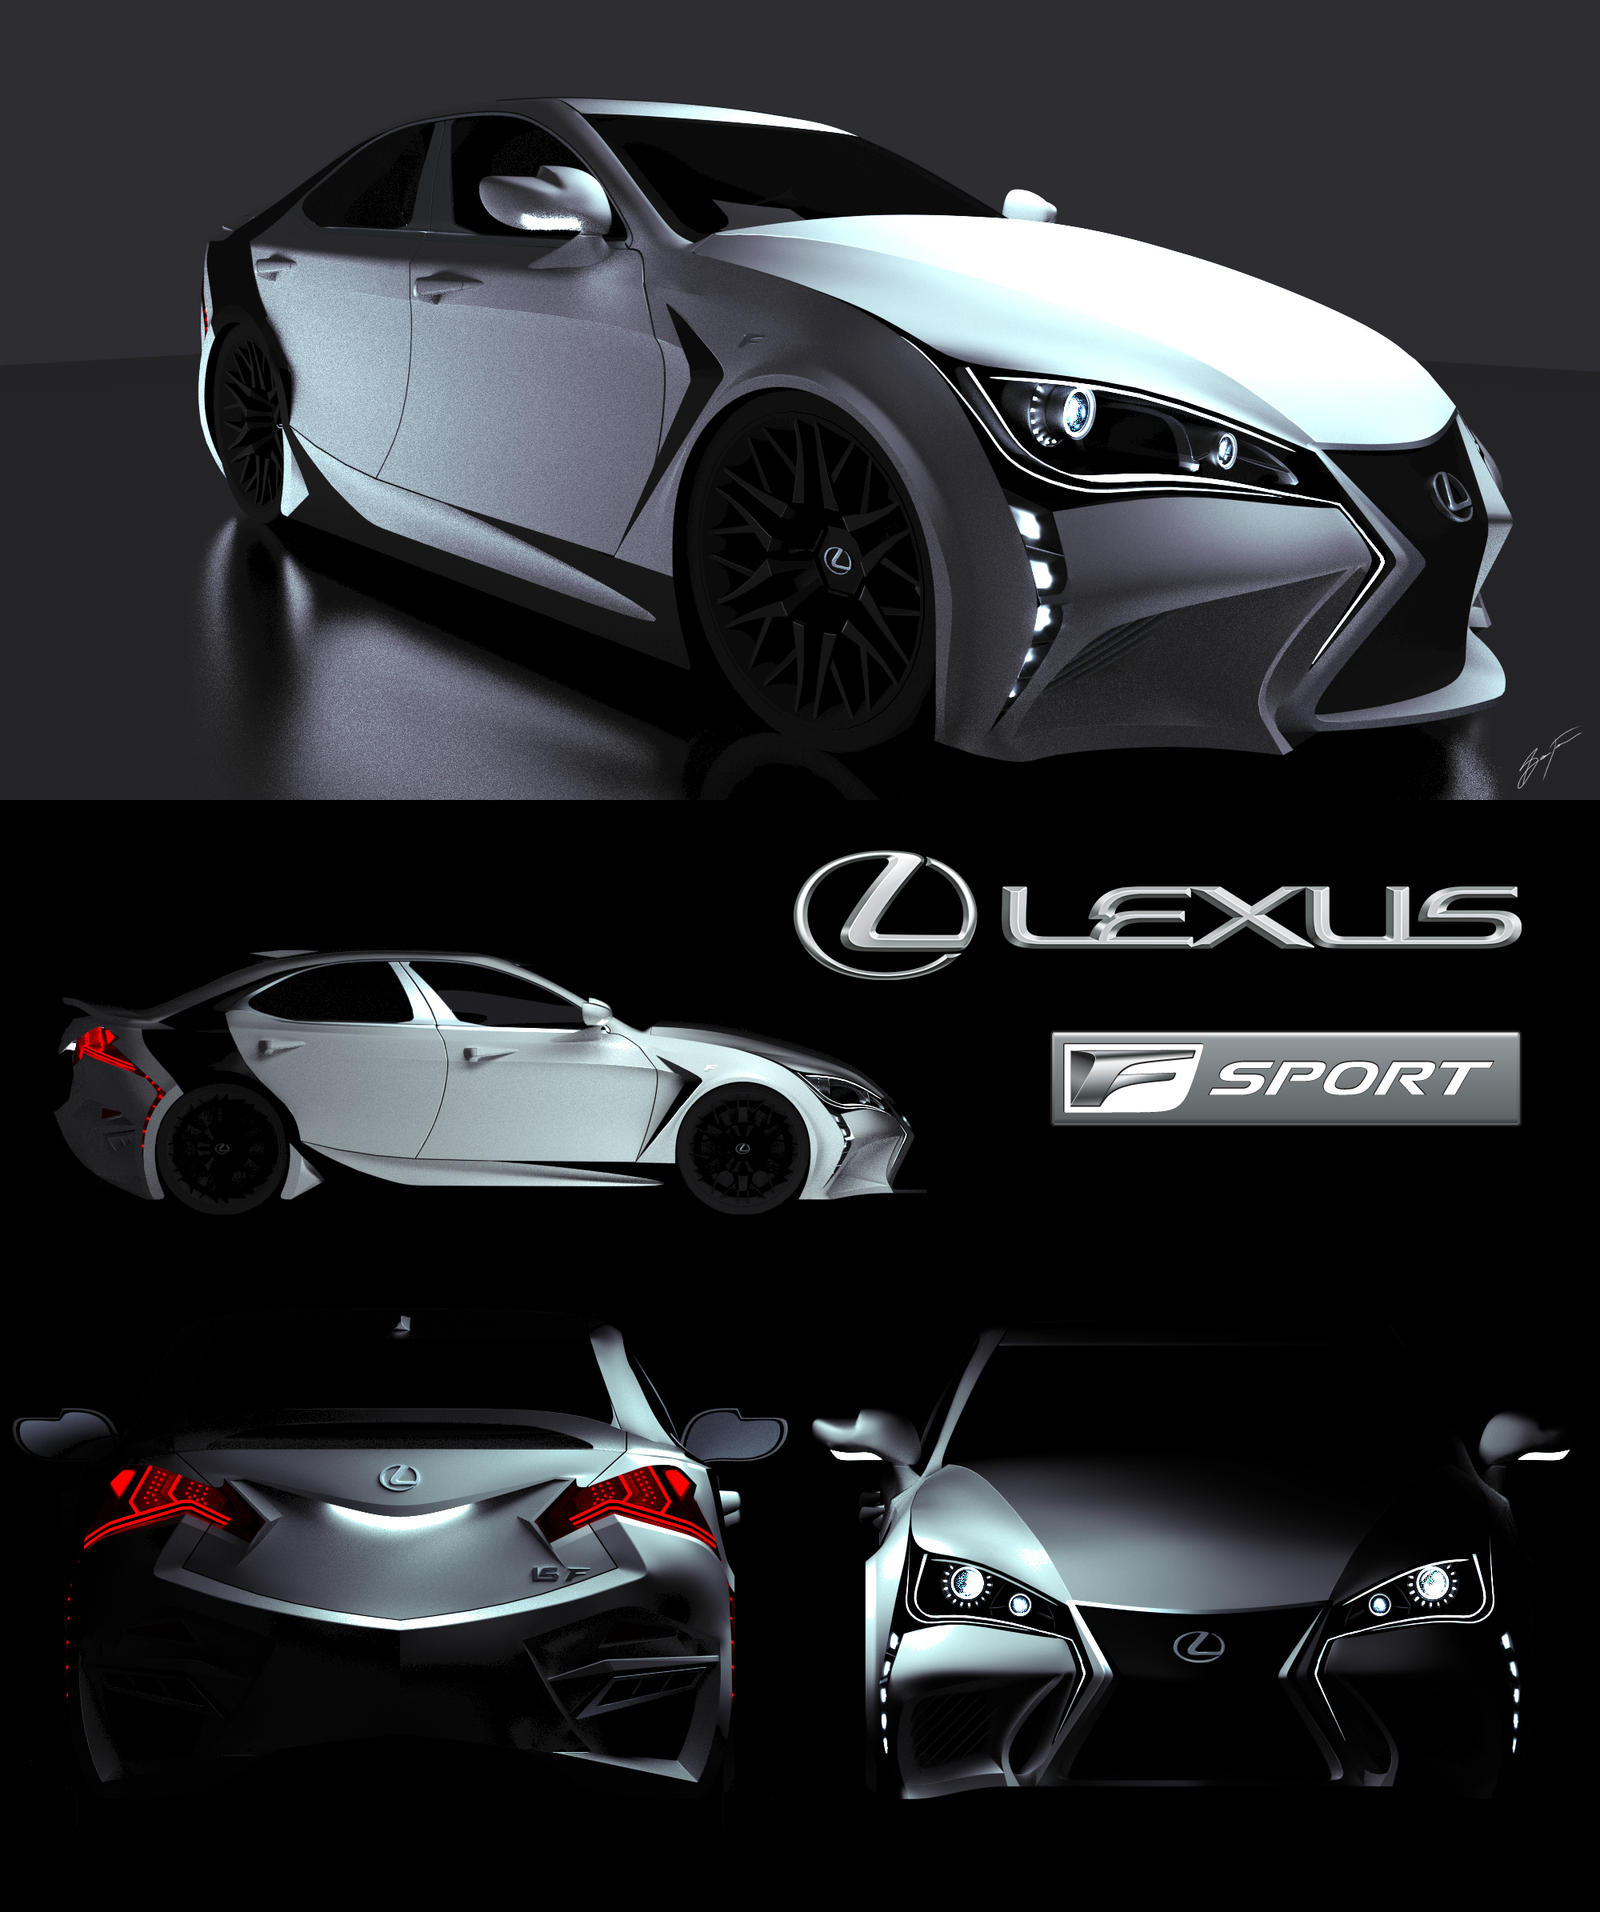 Lexus IS-F Sport by SeanFarnam